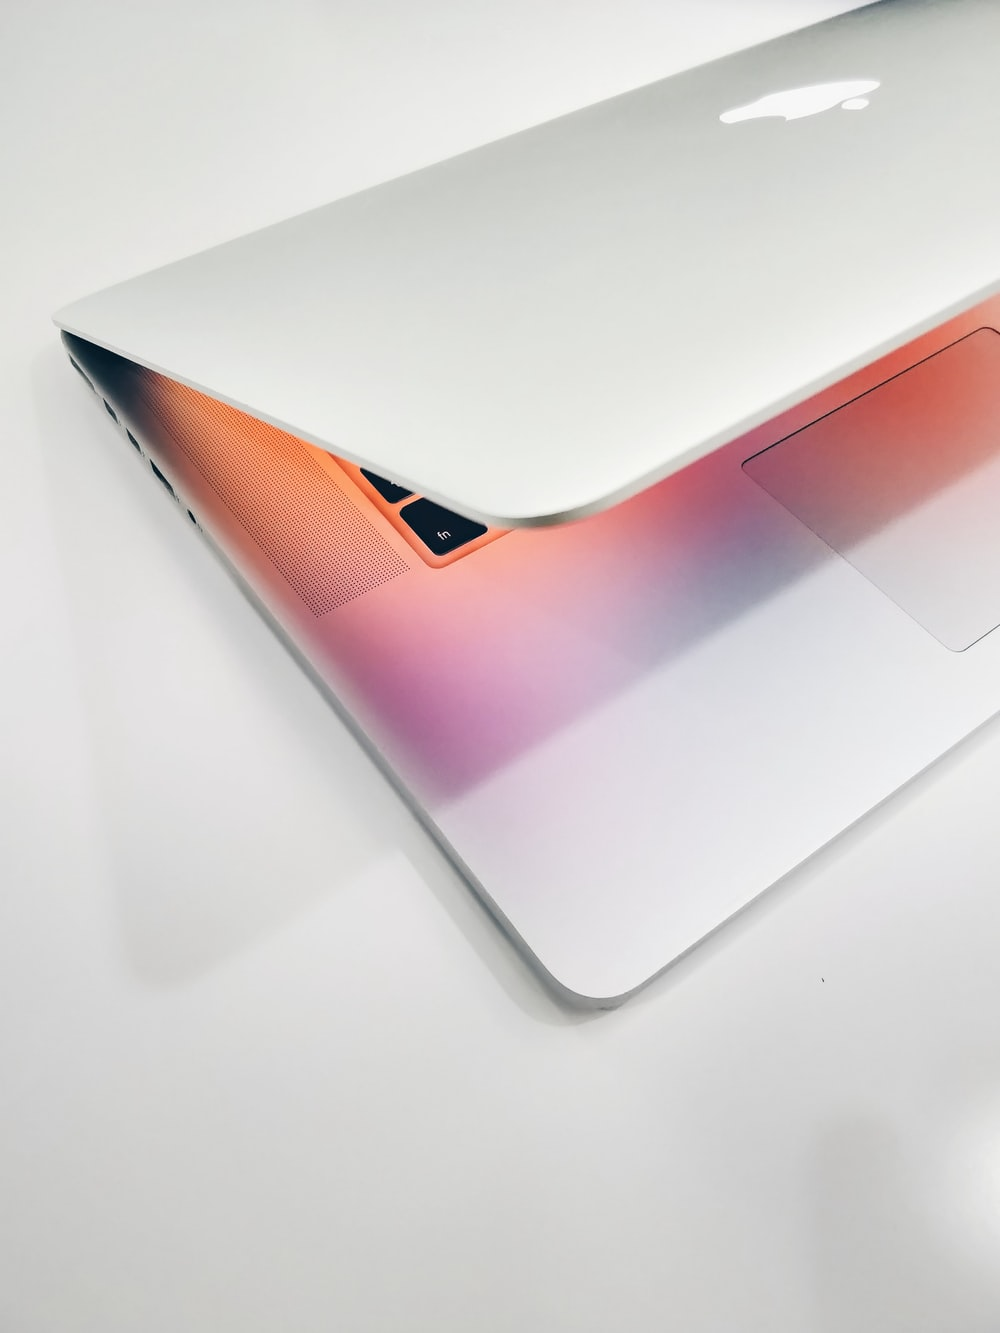 Apple MacBook air on wooden surface